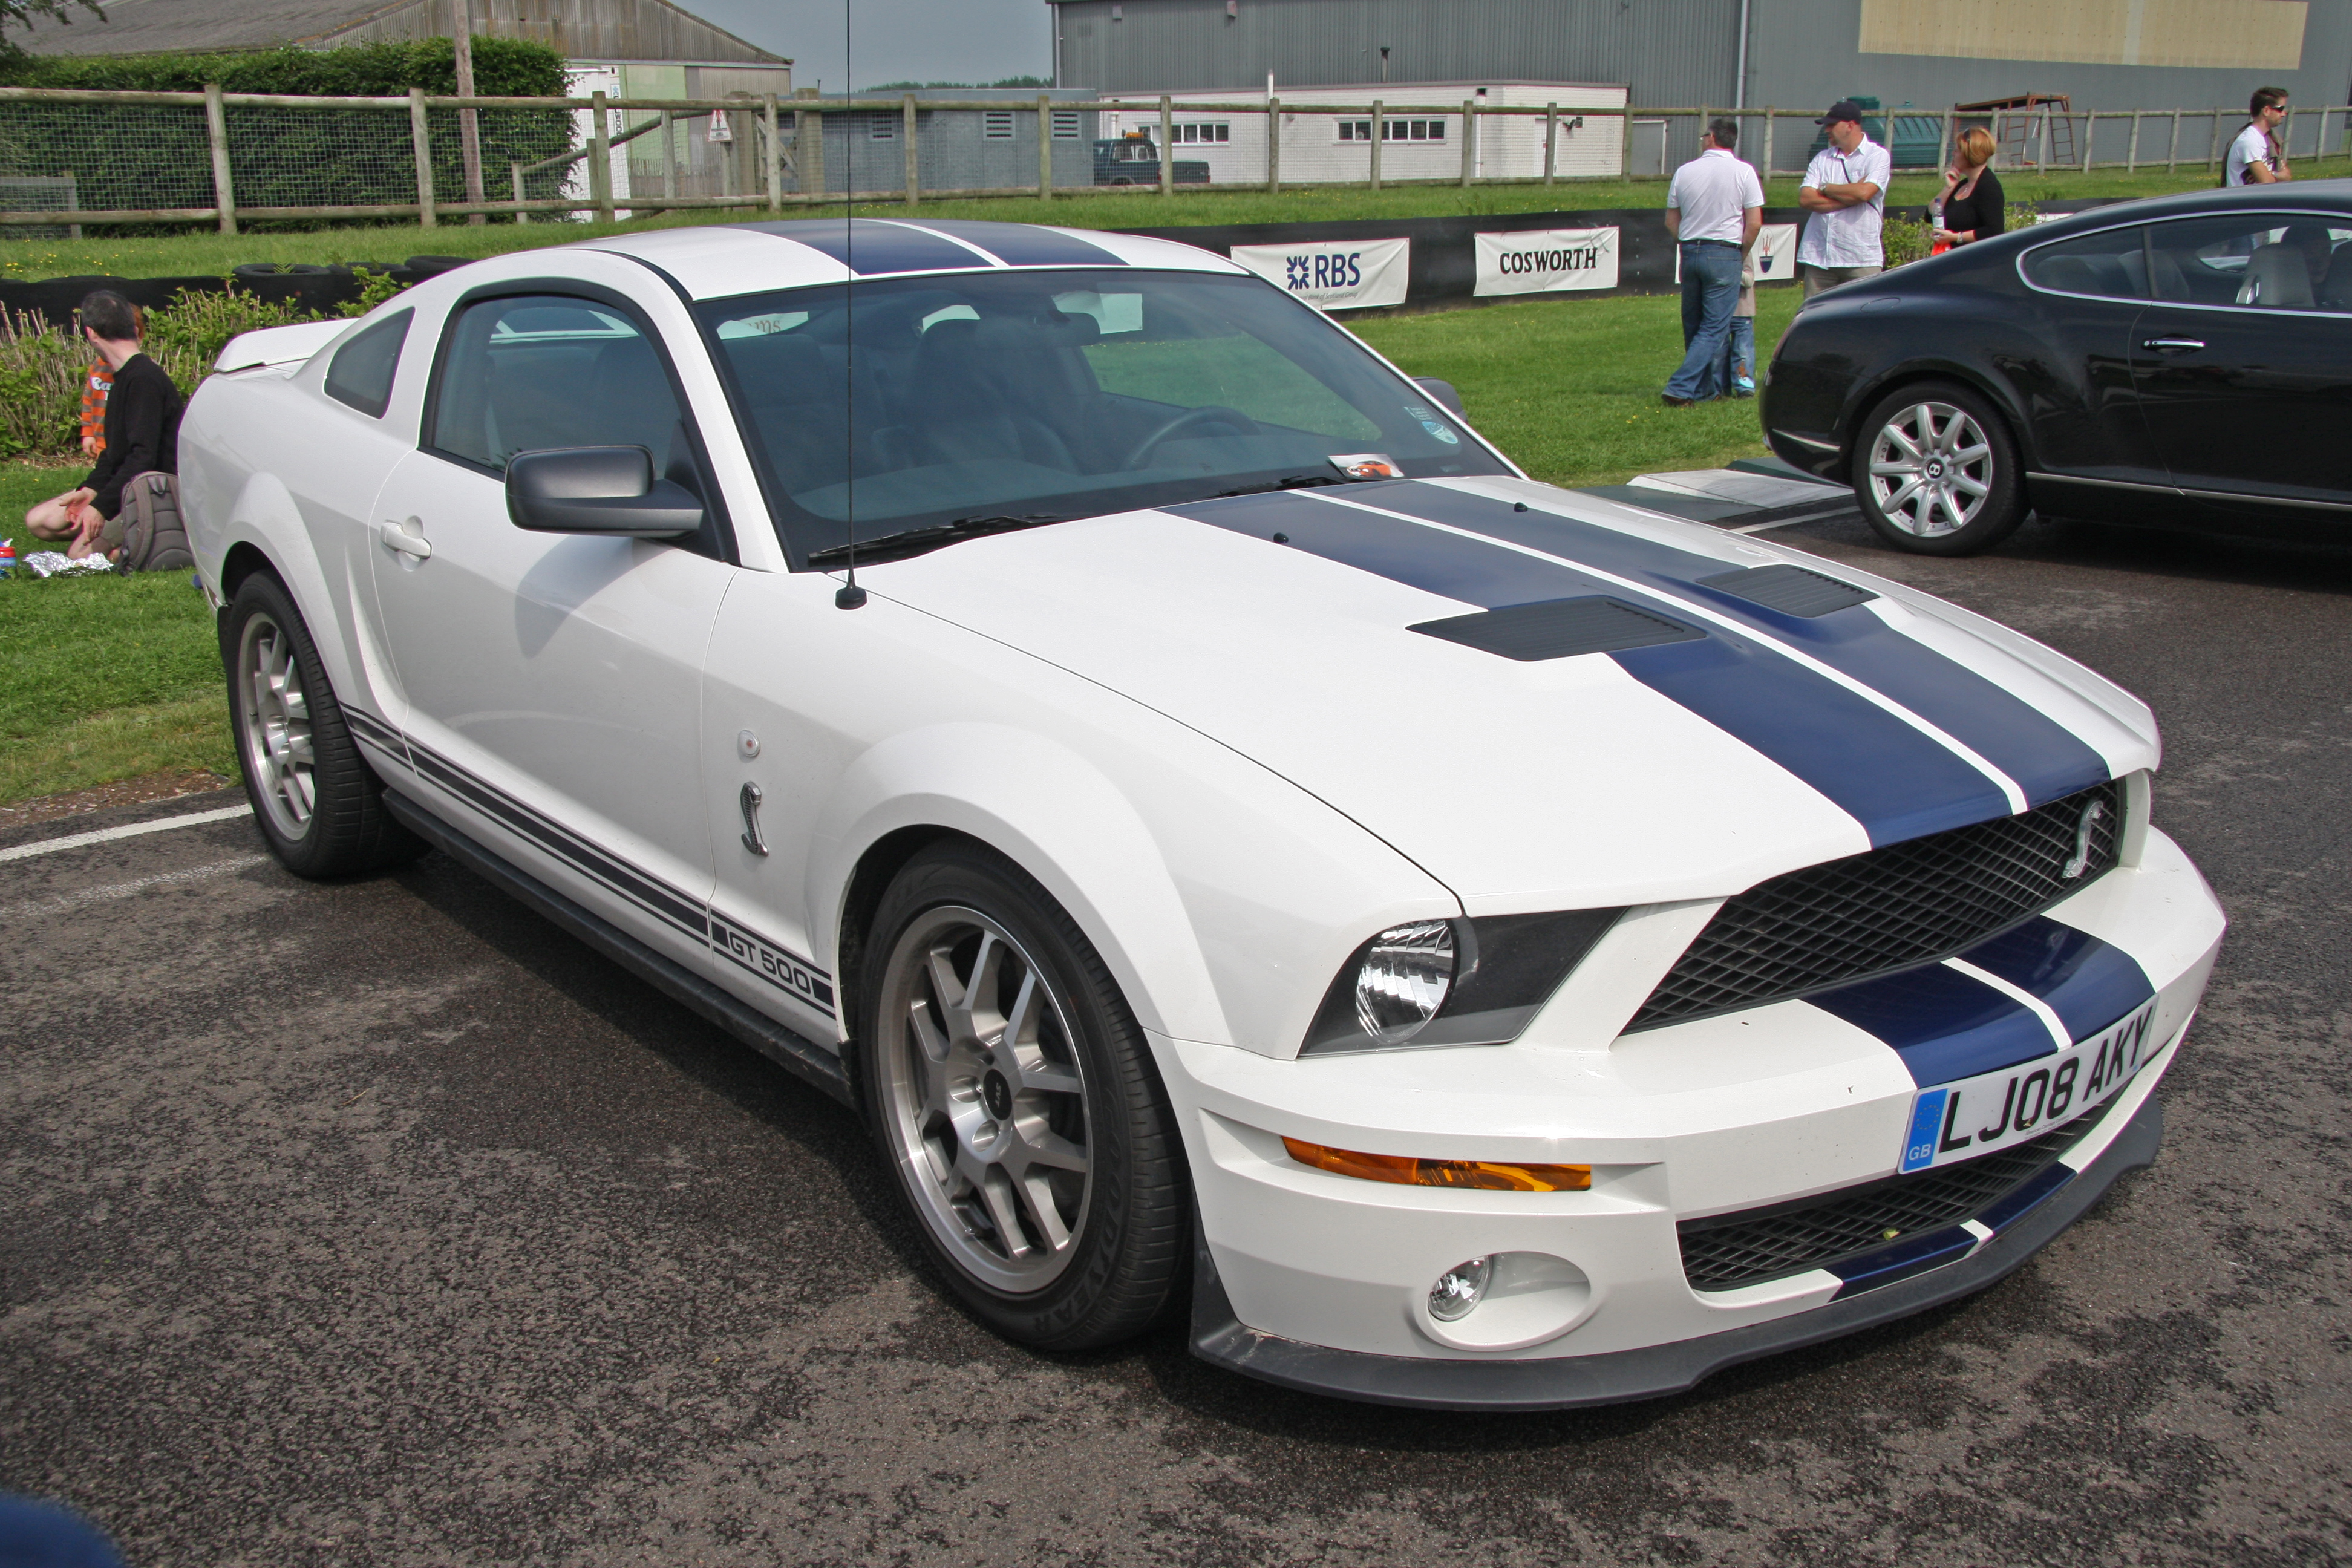 Fileford mustang shelby gt 500 flickr exfordy jpg wikimedia